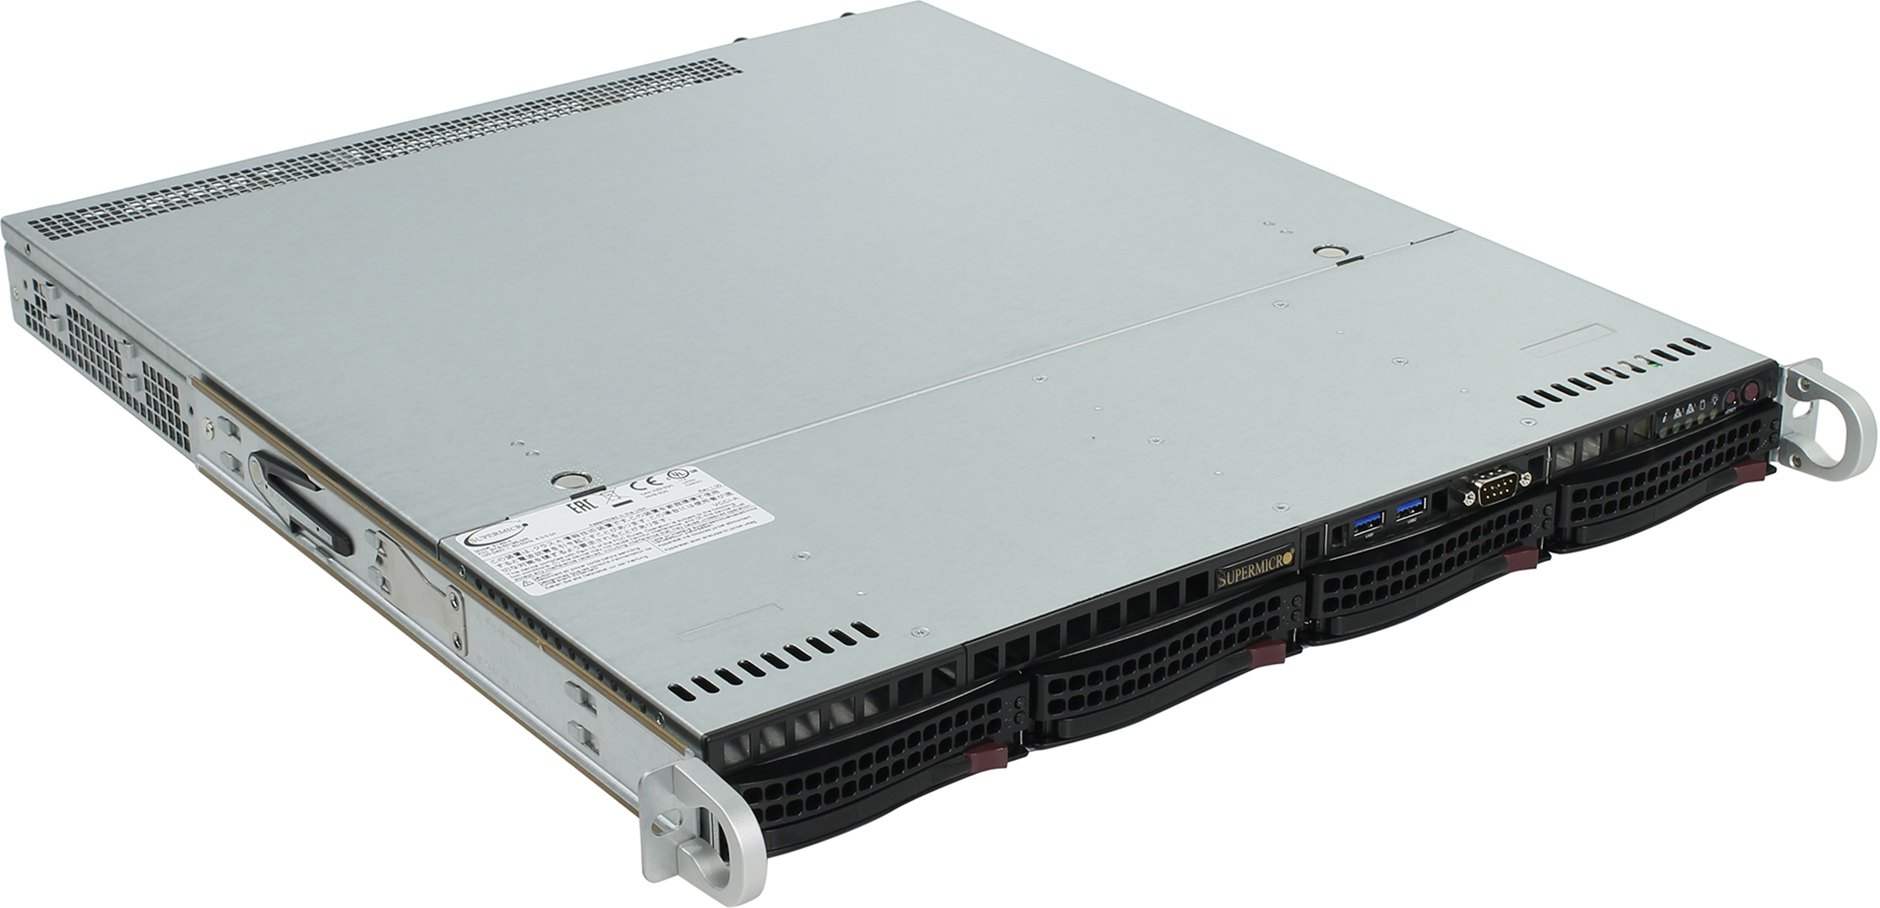 SERVER Rack 1120 0671691 1xE3-1220V6/1x8gb/2x1tb/2x400w/Windows Server 2019 Standard server 400